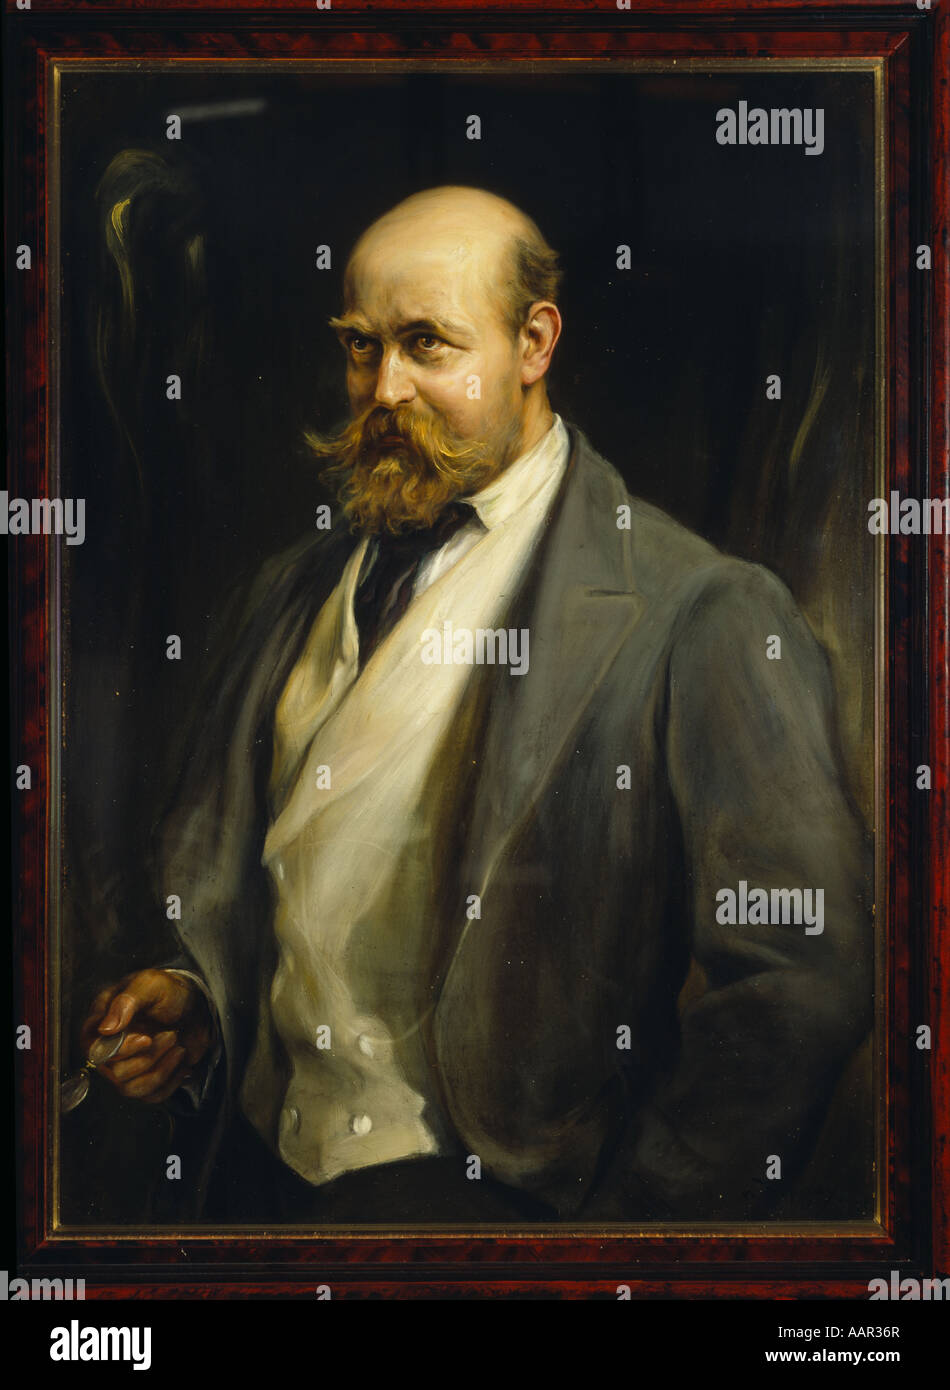 Lord Lionel Walter Rothschild 1868 1937 - Stock Image